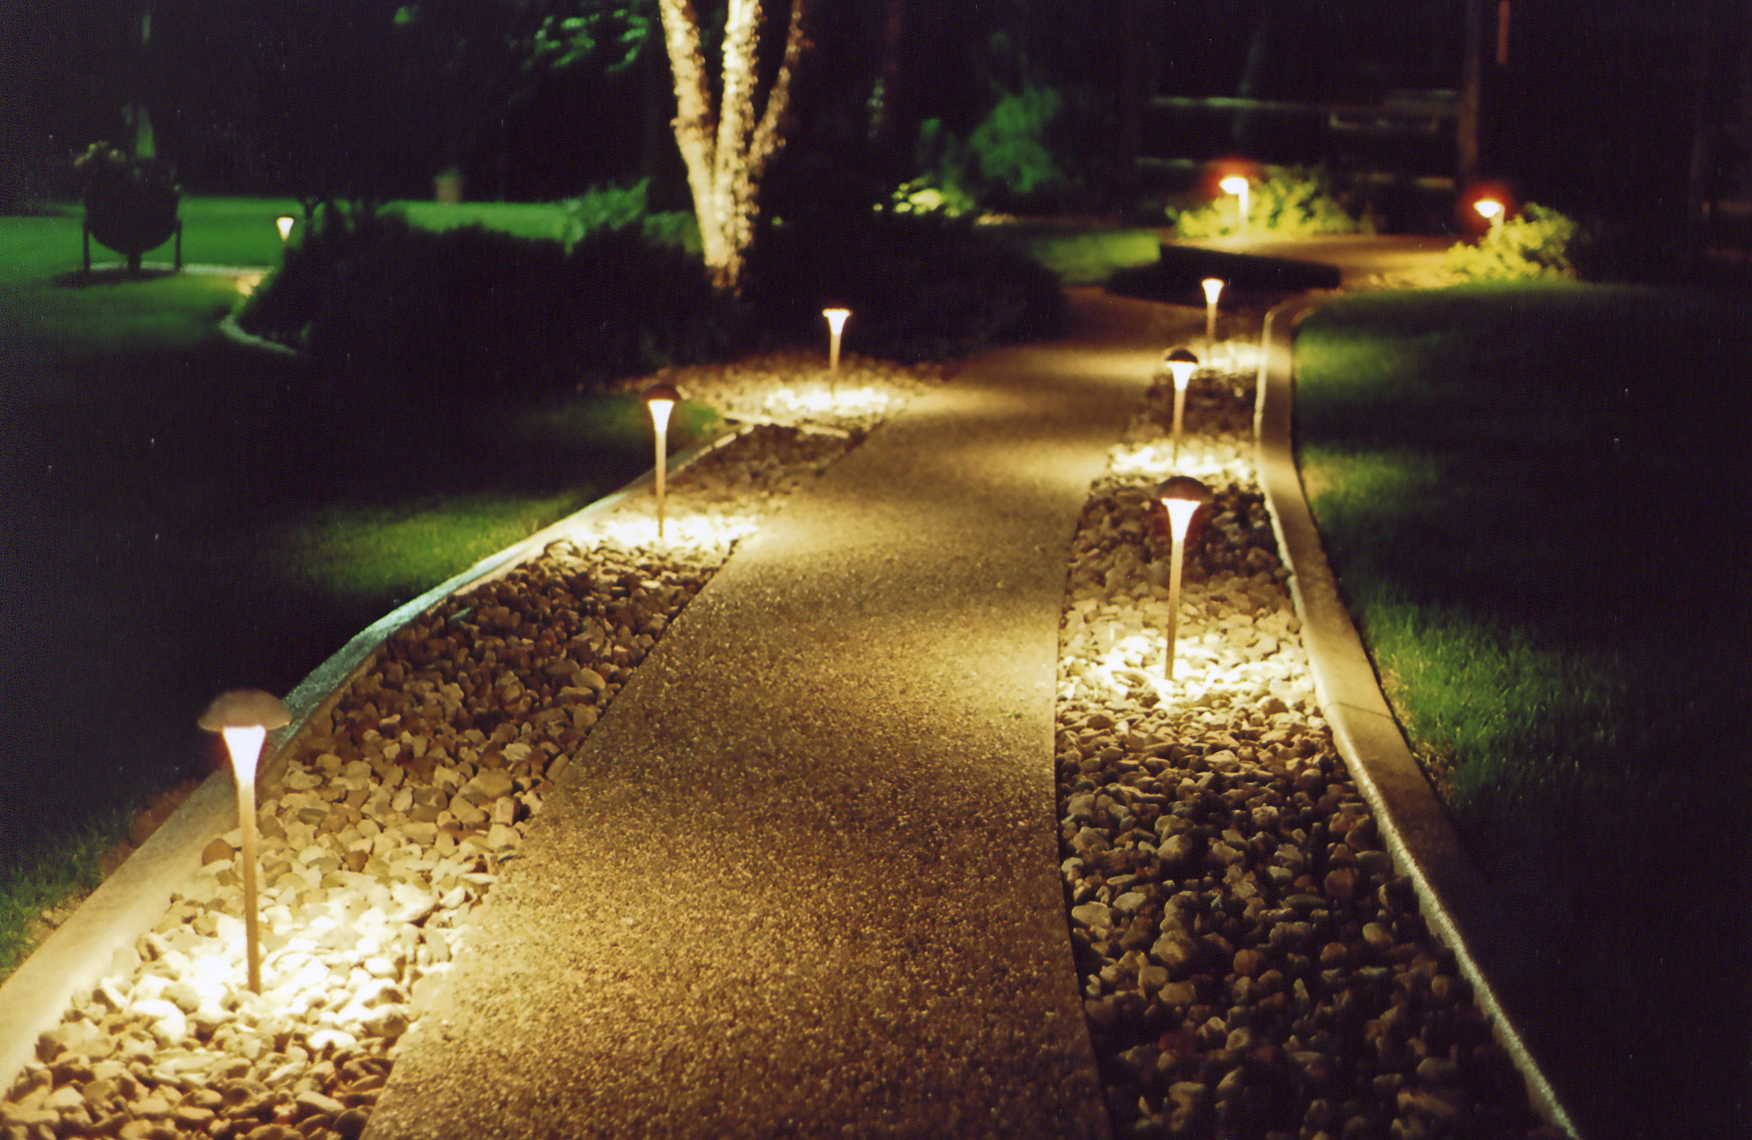 Path and Garden lighting-Brandon FL Outdoor Lighting Installers-We Offer Outdoor Lighting Services, Landscape Lighting, Low Voltage Lighting, Outdoor LED landscape Lighting, Holiday Lighting, Christmas Lighting, Tree Lighting, Canopy Lighting, Residential outdoor Lighting, Commercial outdoor Lighting, Safety Lighting, Path and Garden Lighting, Mini lights and flood lights, Landscape Lighting installation, Outdoor spot lights, Outdoor LED garden Lighting, Dock Lighting, Accent lights, Deck and patio lights, Security lights, Underwater Lighting, Tree upLighting, Outdoor Lighting repair services, and more.